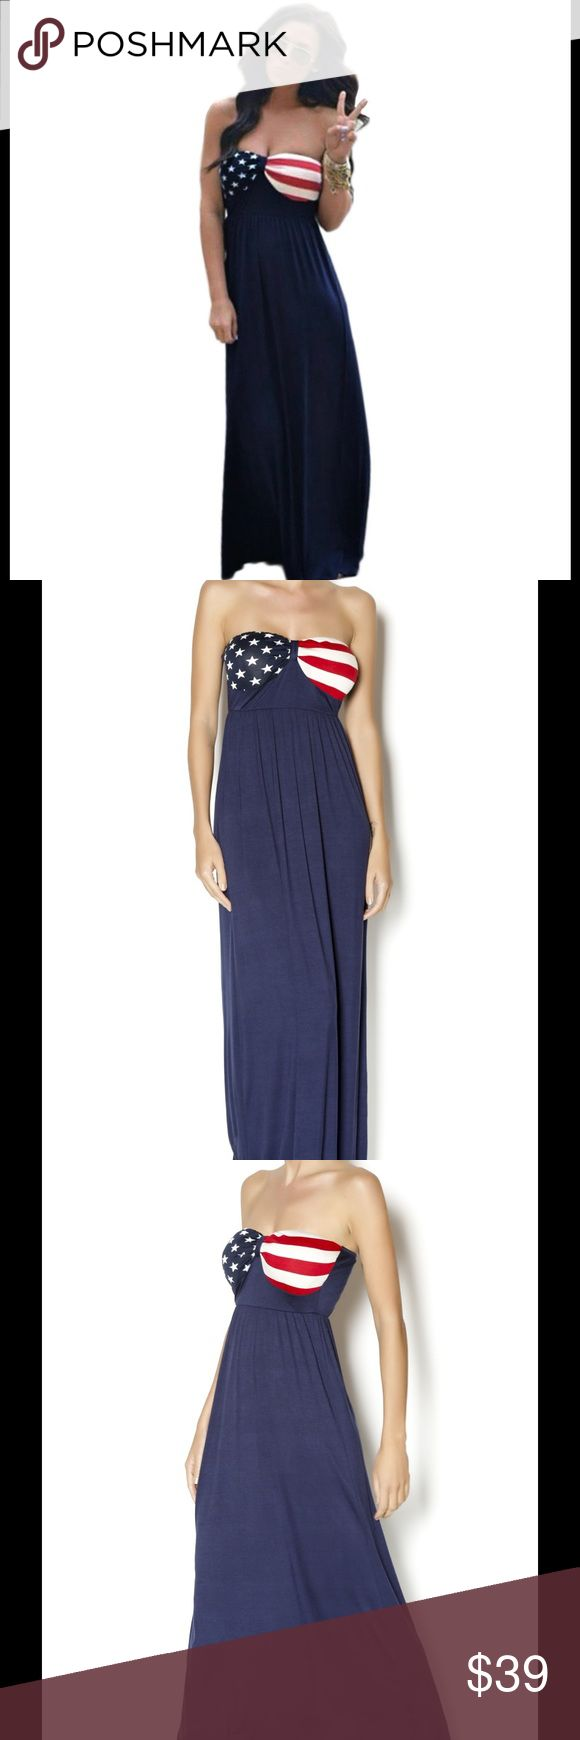 """Clearance Item! Maxi Dress! Just in time for the Fourth of July. Cute maxi dress with a flag design. Small Bust 34.5"""" Waist 28"""" Length 52.5""""  Medium Bust 36"""" Waist 29.5"""" Length 53""""  Large Bust 37.5"""" Waist 31.5"""" Length 53.5"""" Dresses Maxi"""